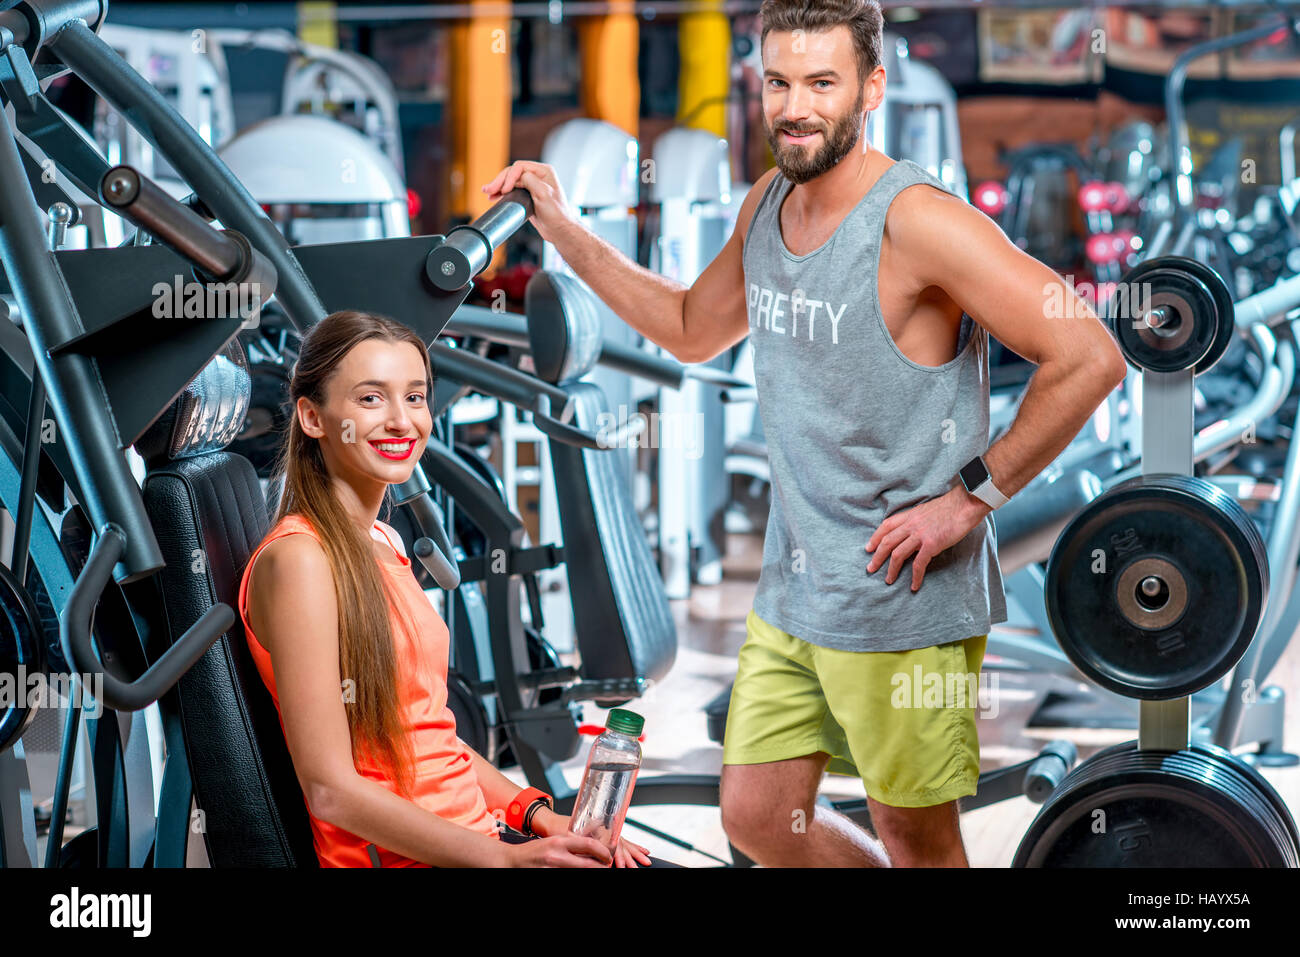 Personal trainer with woman - Stock Image